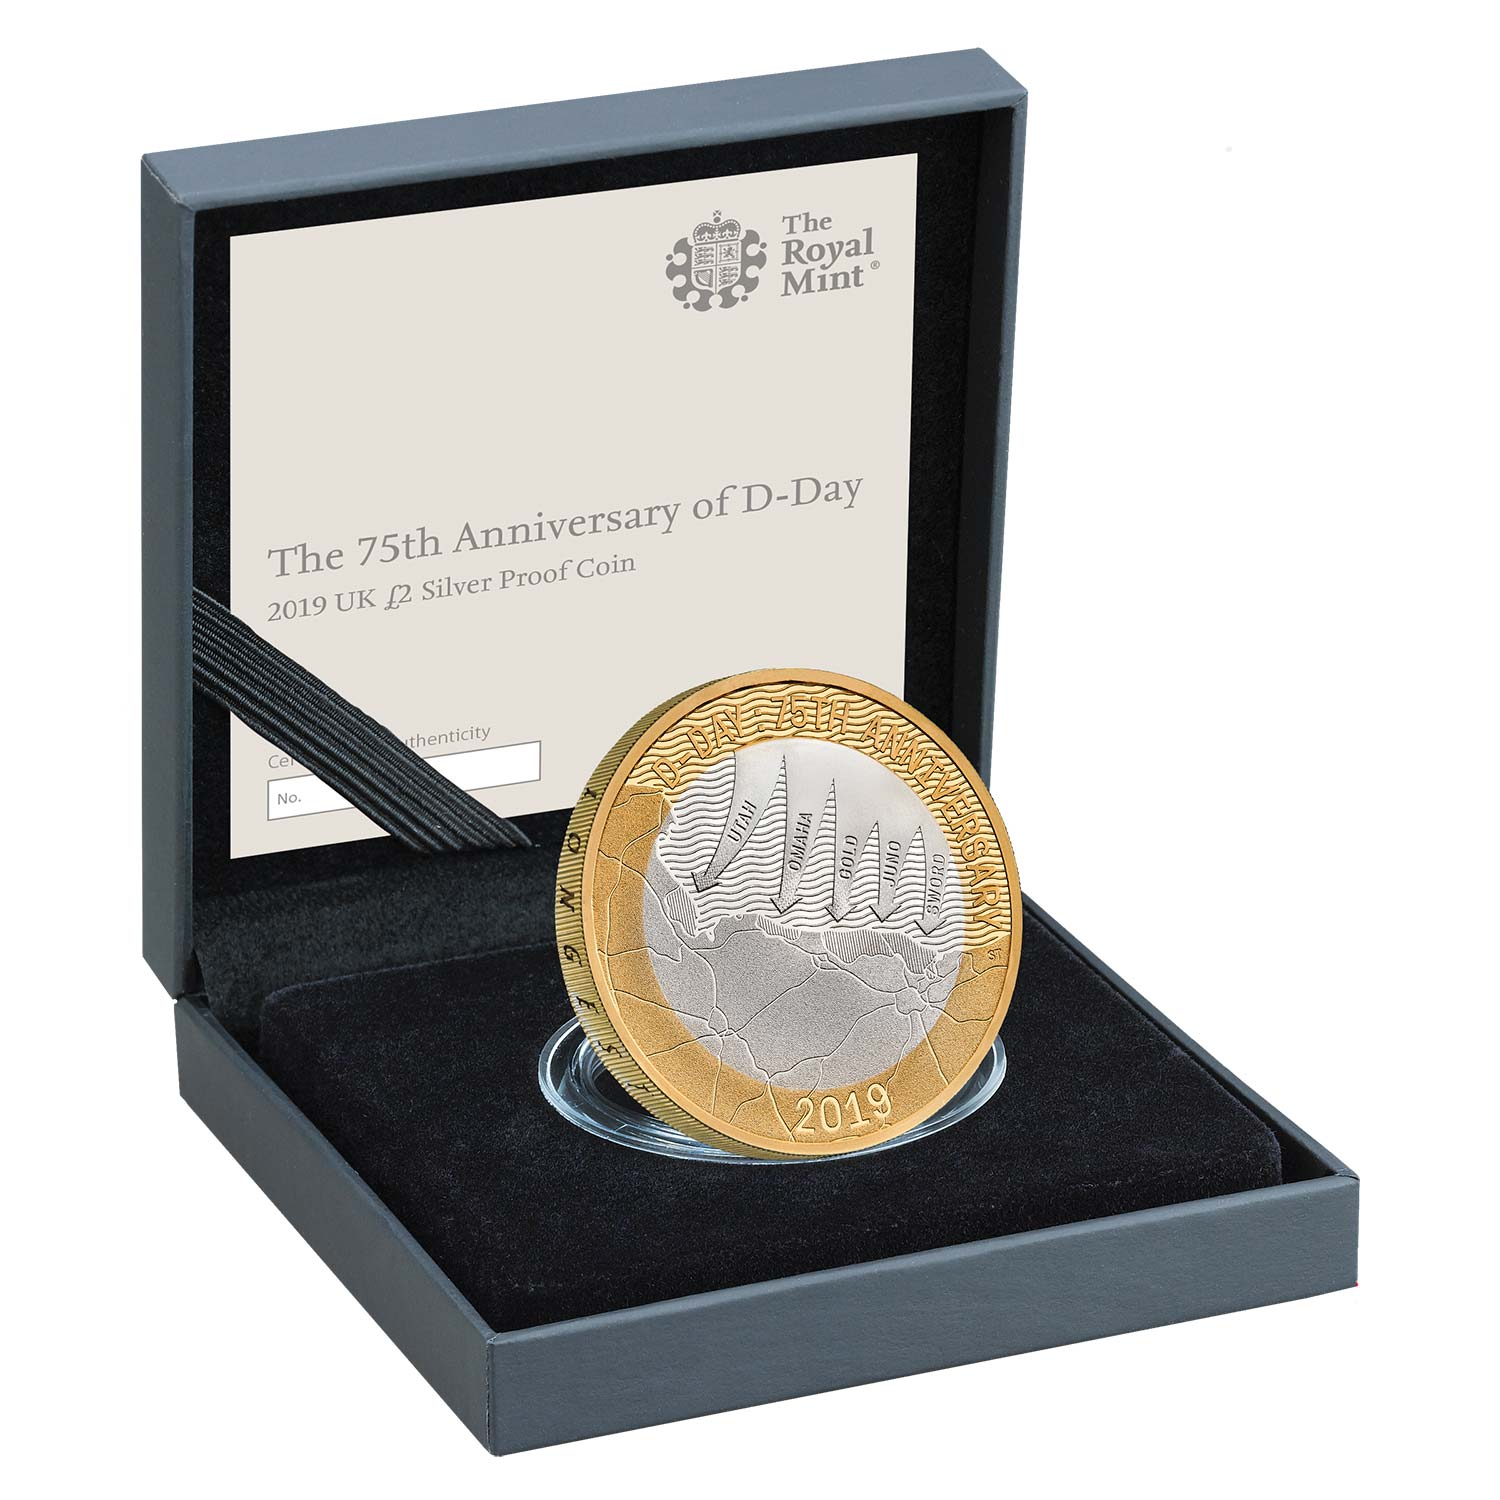 UK Royal Mint First World War 2014-15 16 17 £2 Coin Cover BUNC Limited edition